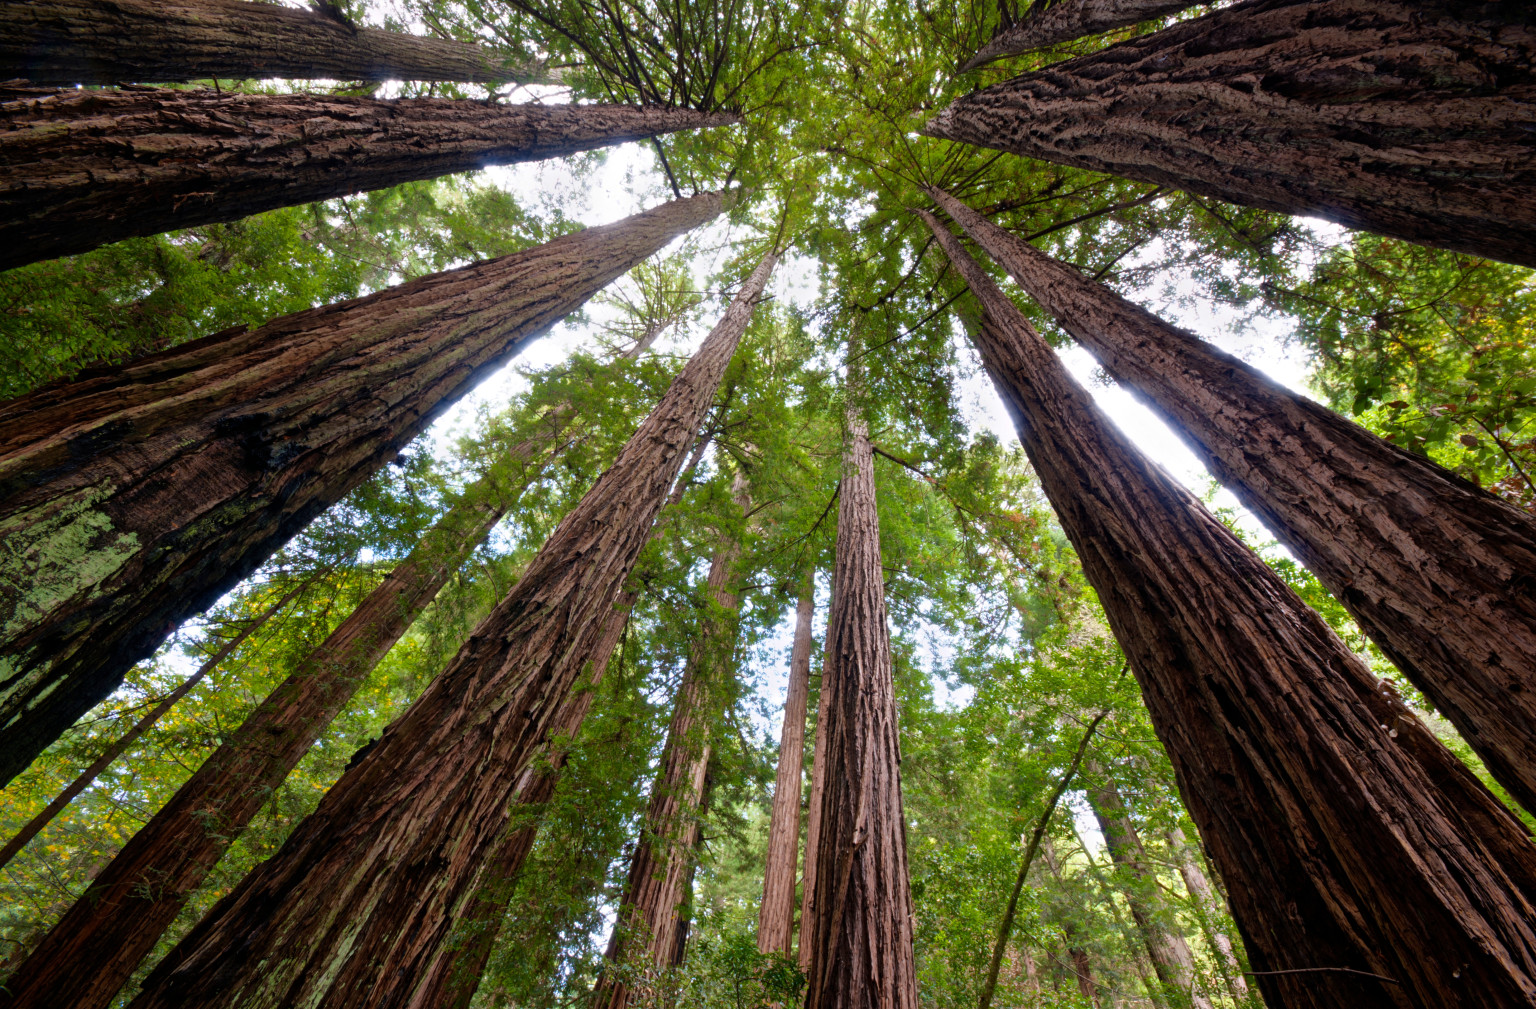 analysis of planting a sequoia Planting a sequoia by dana gioia february 1990 february 1990 poems february 1990  but today we kneel in the cold planting you, our native giant,.